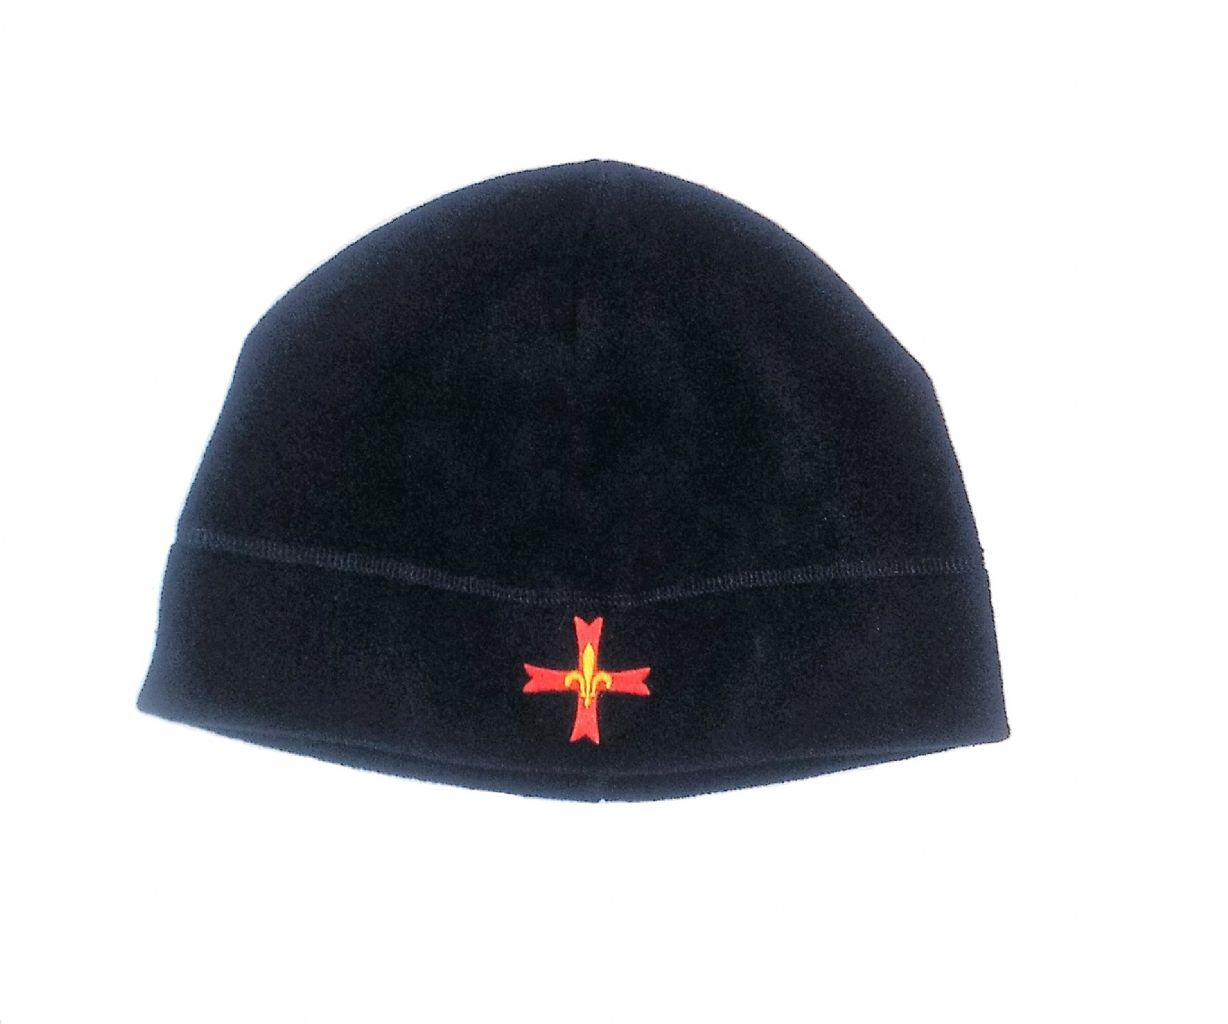 FLEECE CAP WITH LOGO